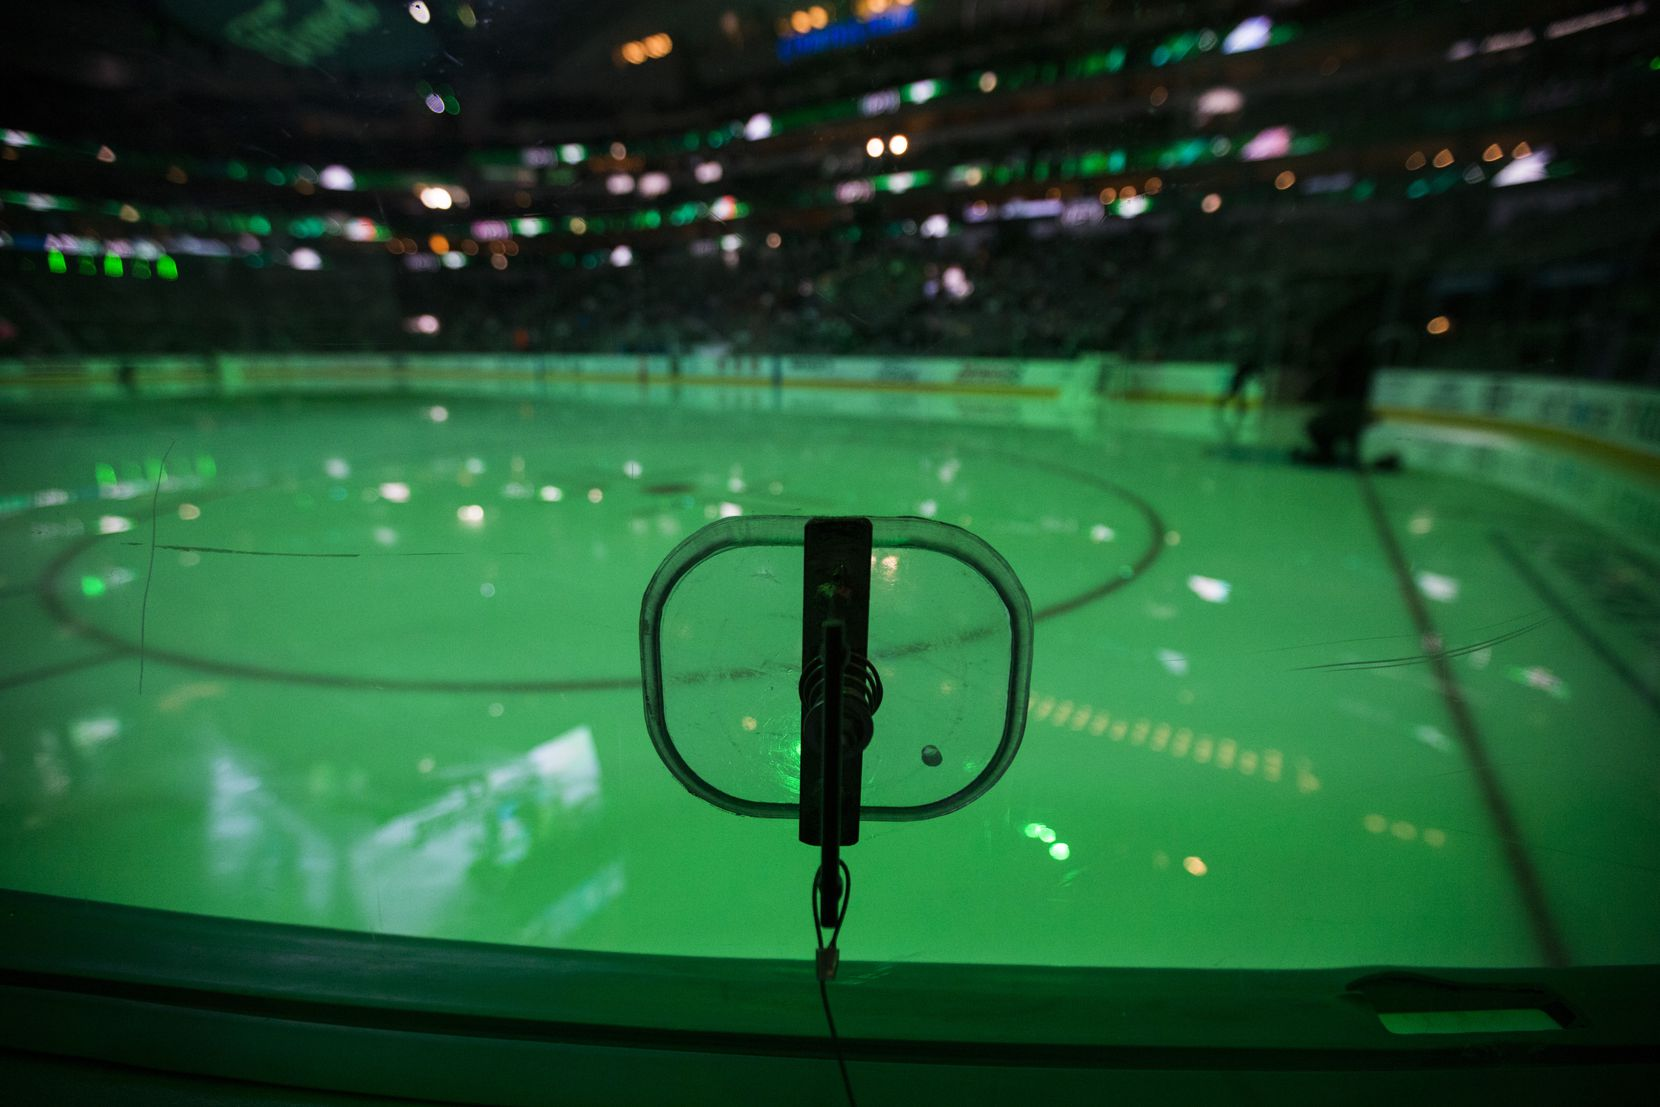 A view of a photo hole used by photographers to shoot images at American Airlines Center before the NHL game between the Dallas Stars and Buffalo Sabres on Jan. 16, 2020.